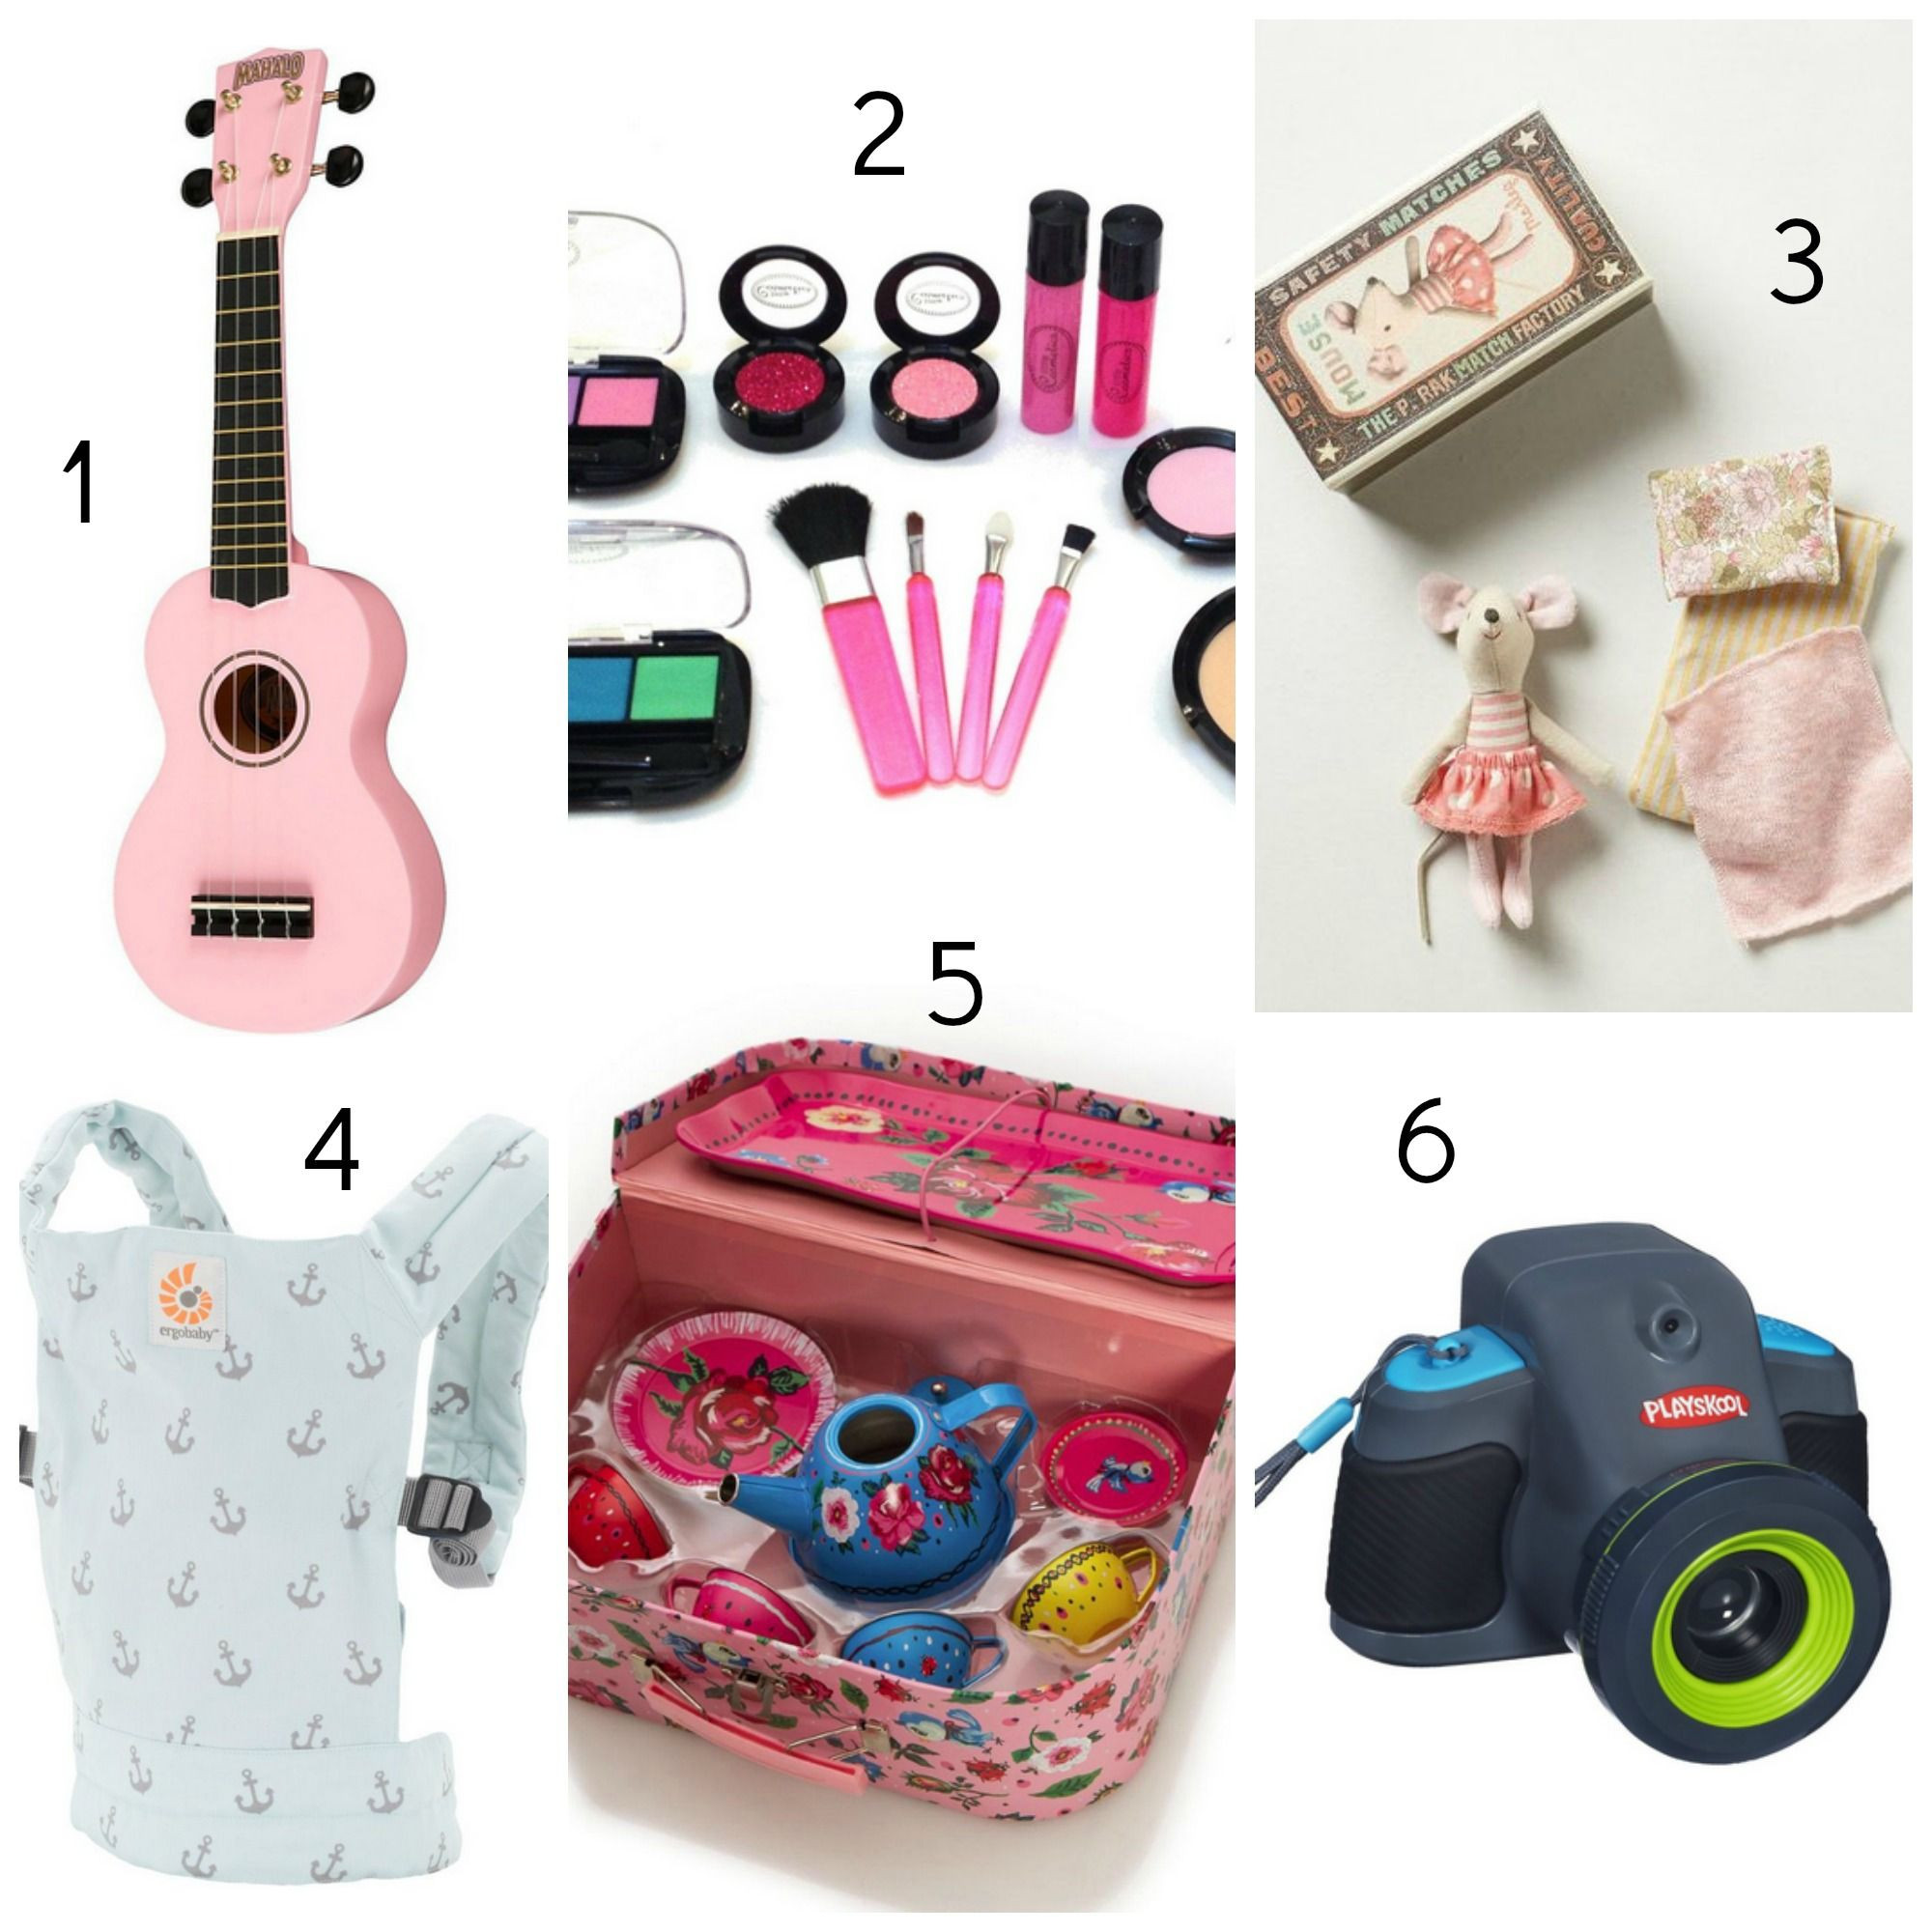 DIY Gifts For 3 Year Old  Gift Guide For Little Girls 3 5 Year Olds